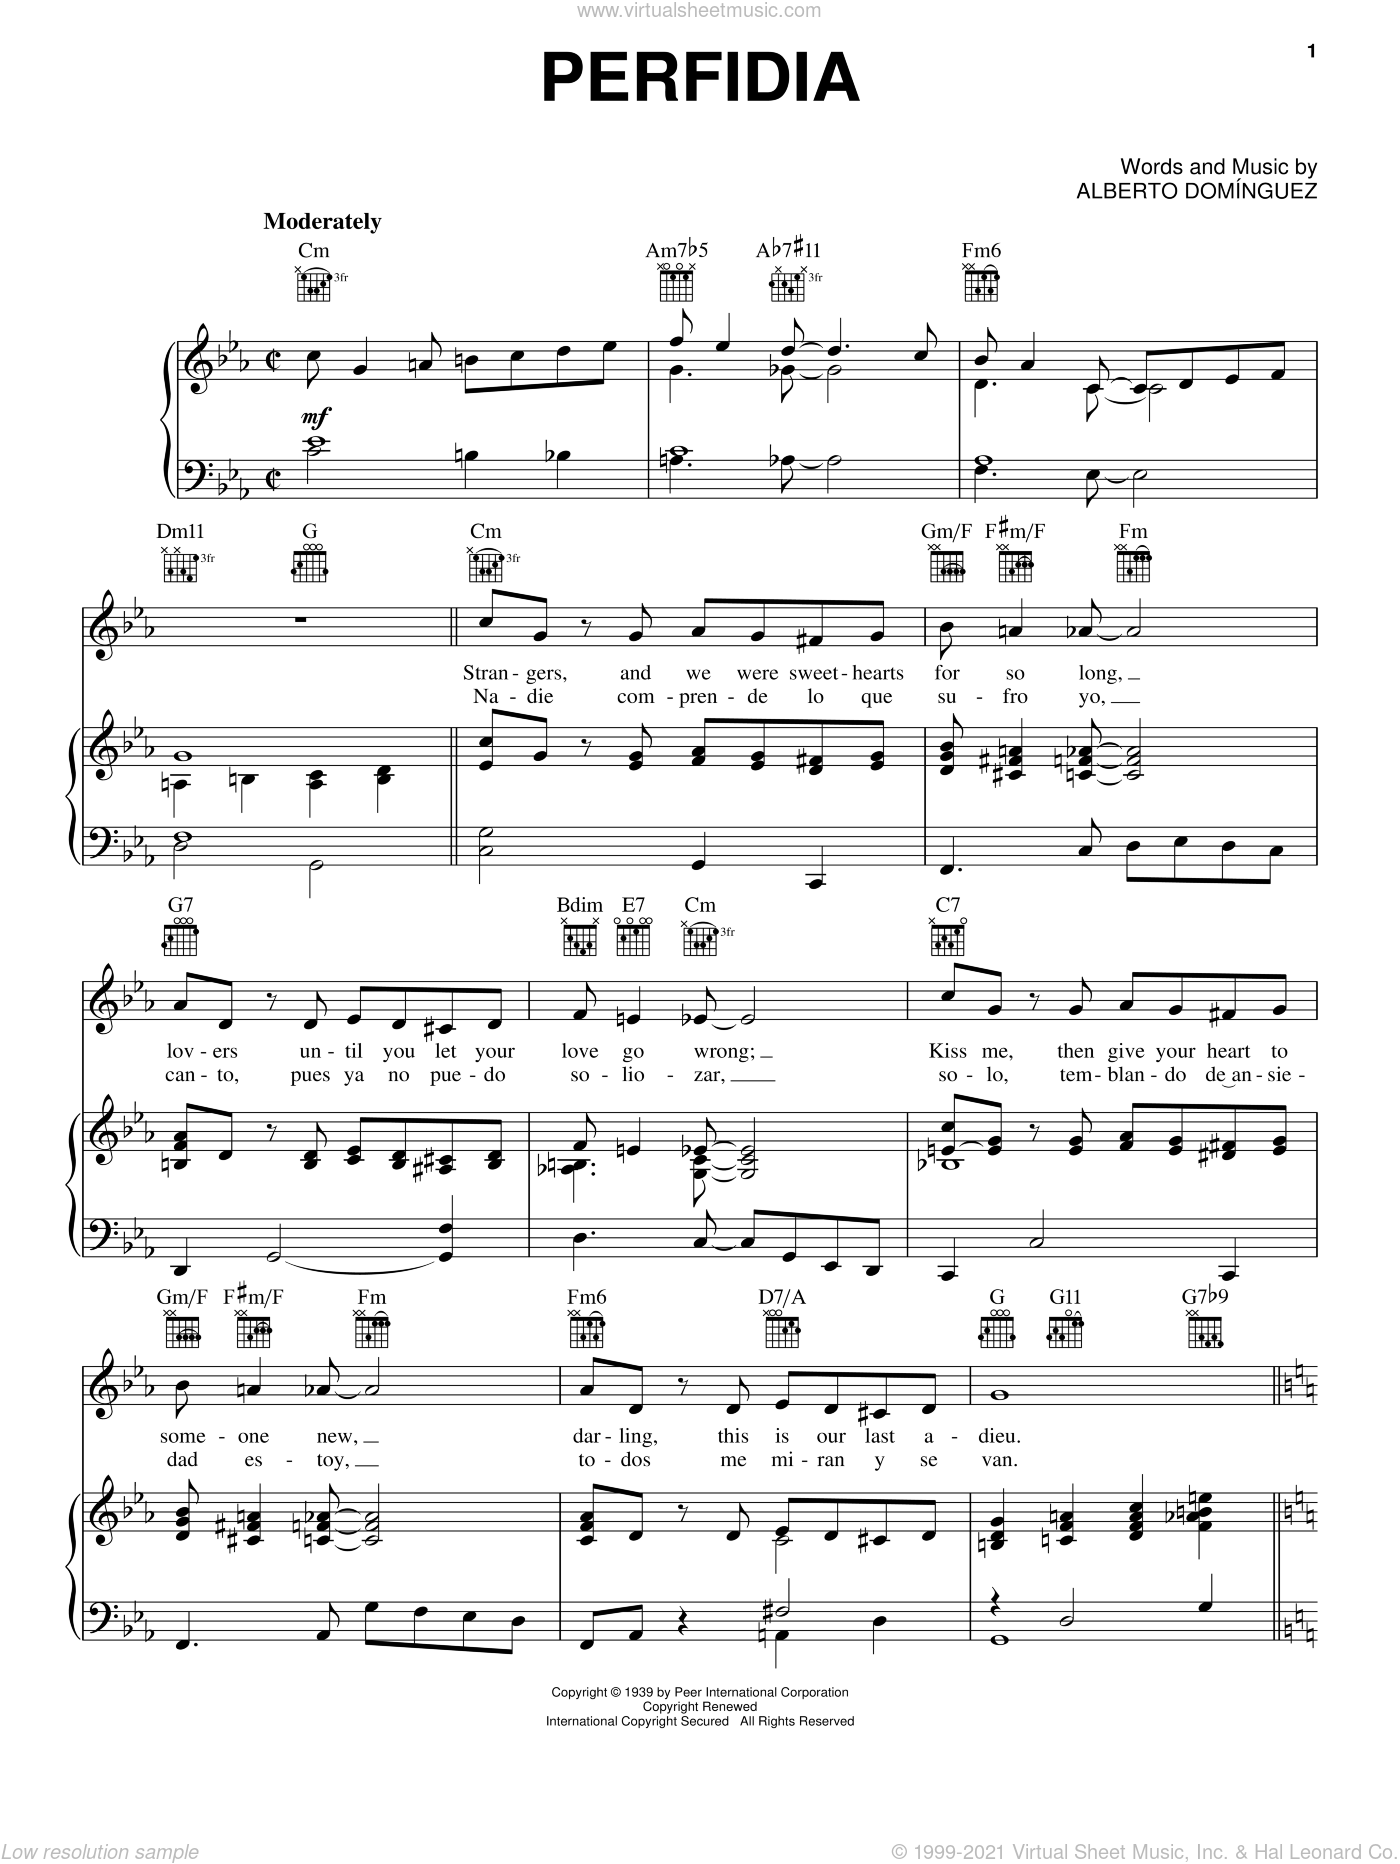 Perfidia sheet music for voice, piano or guitar by Alberto Dominguez, intermediate skill level